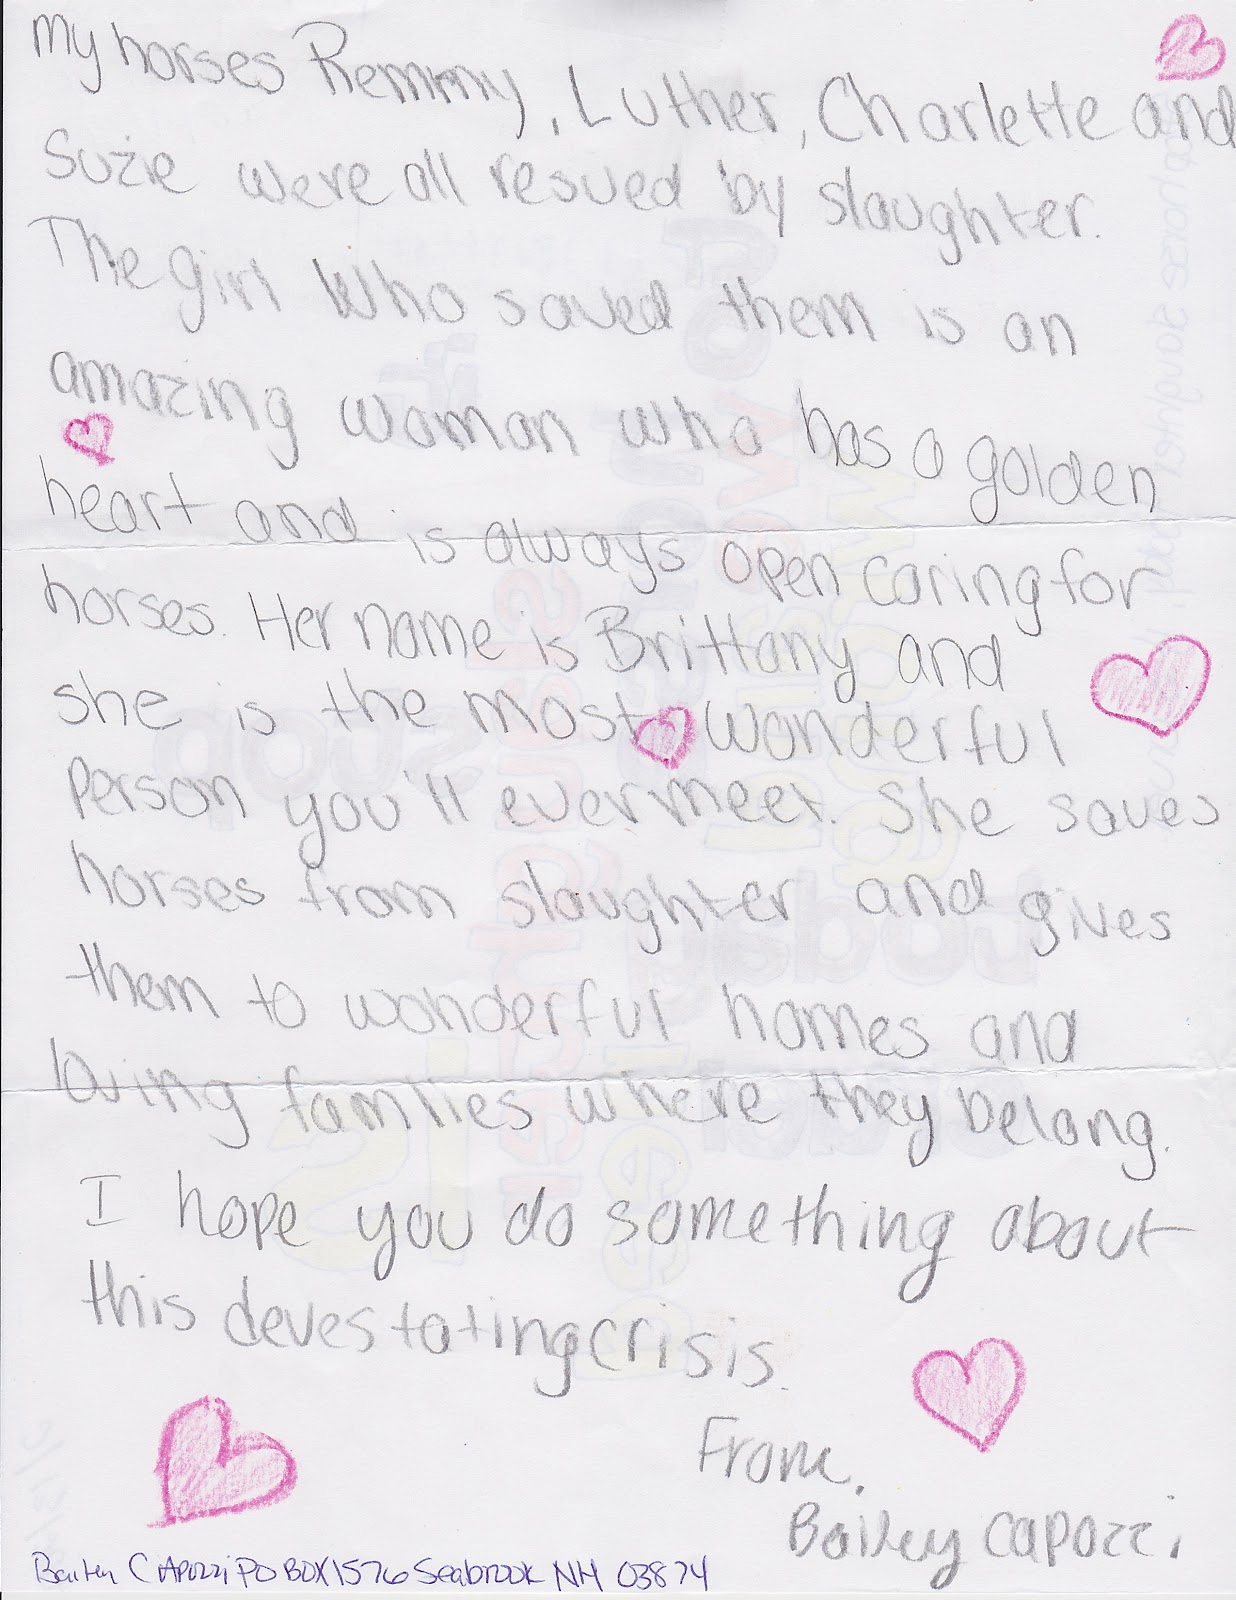 Children 4 Horses Letter Examples From Two Sisters